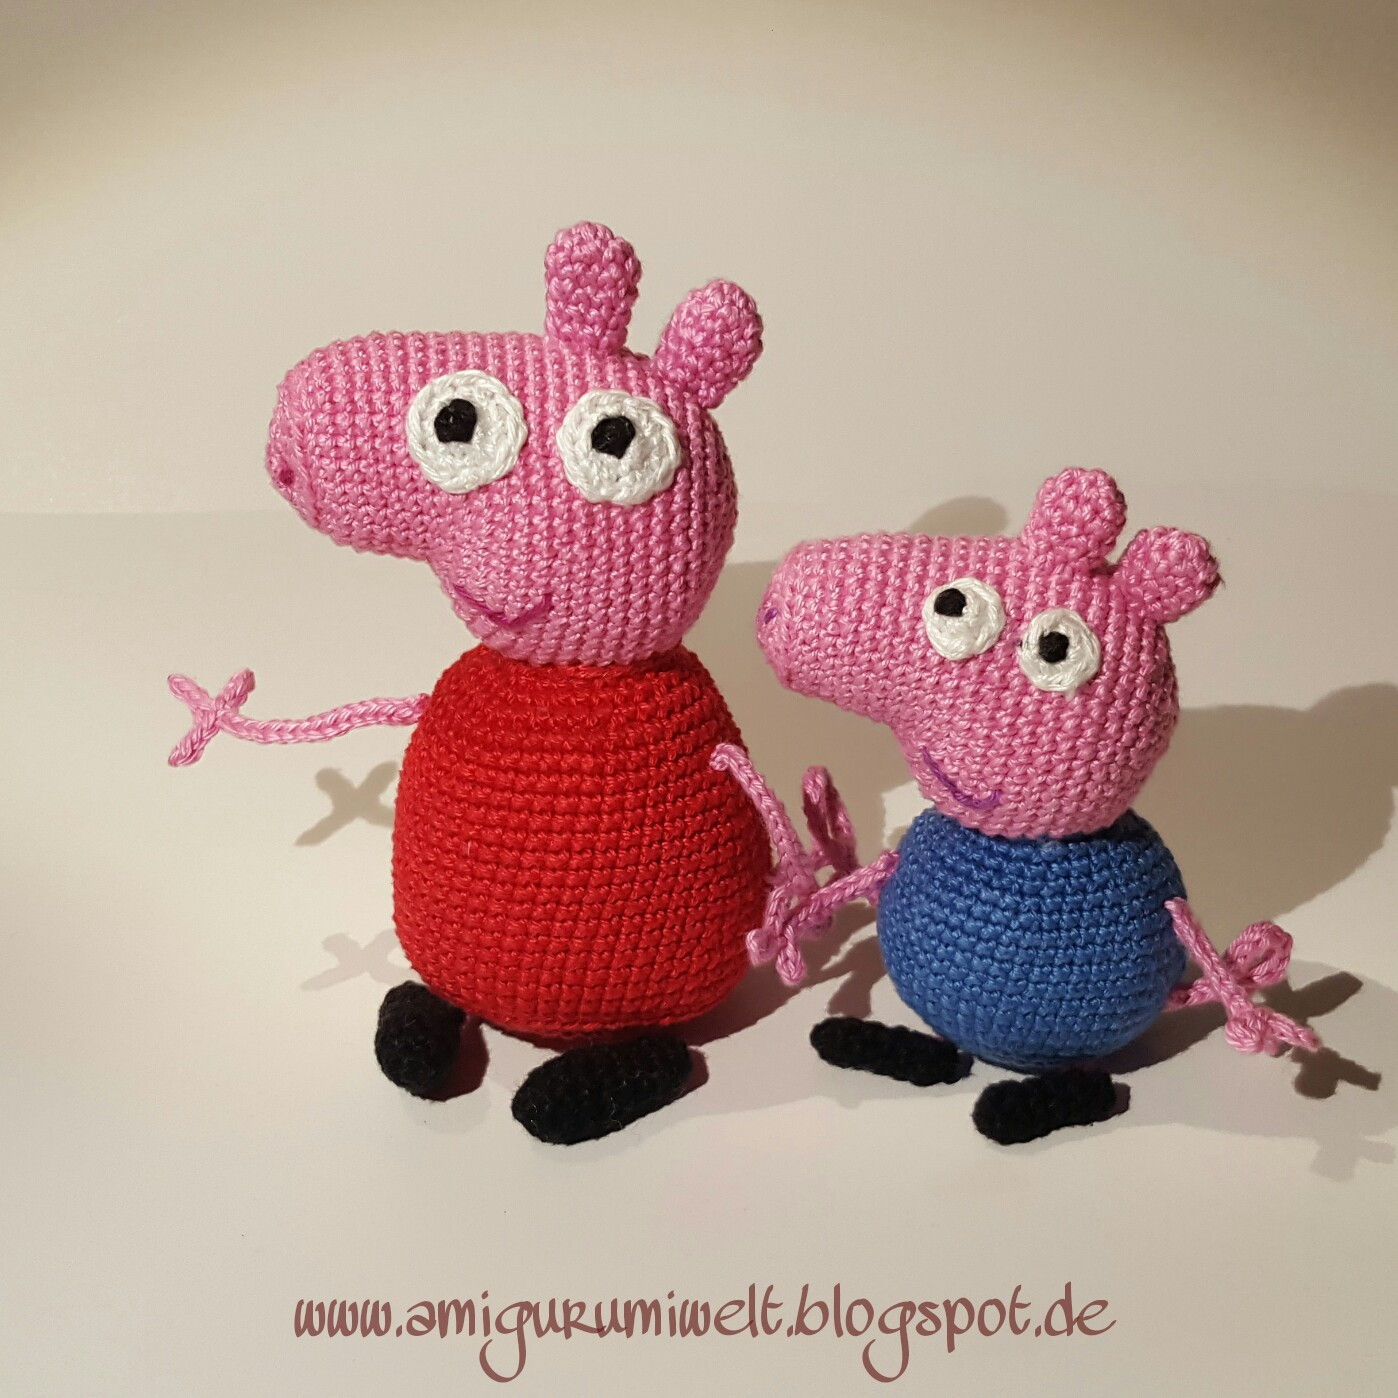 Peppa Pig & George Pig Soft Toys Crochet, from TatieSoftToys | 1398x1398